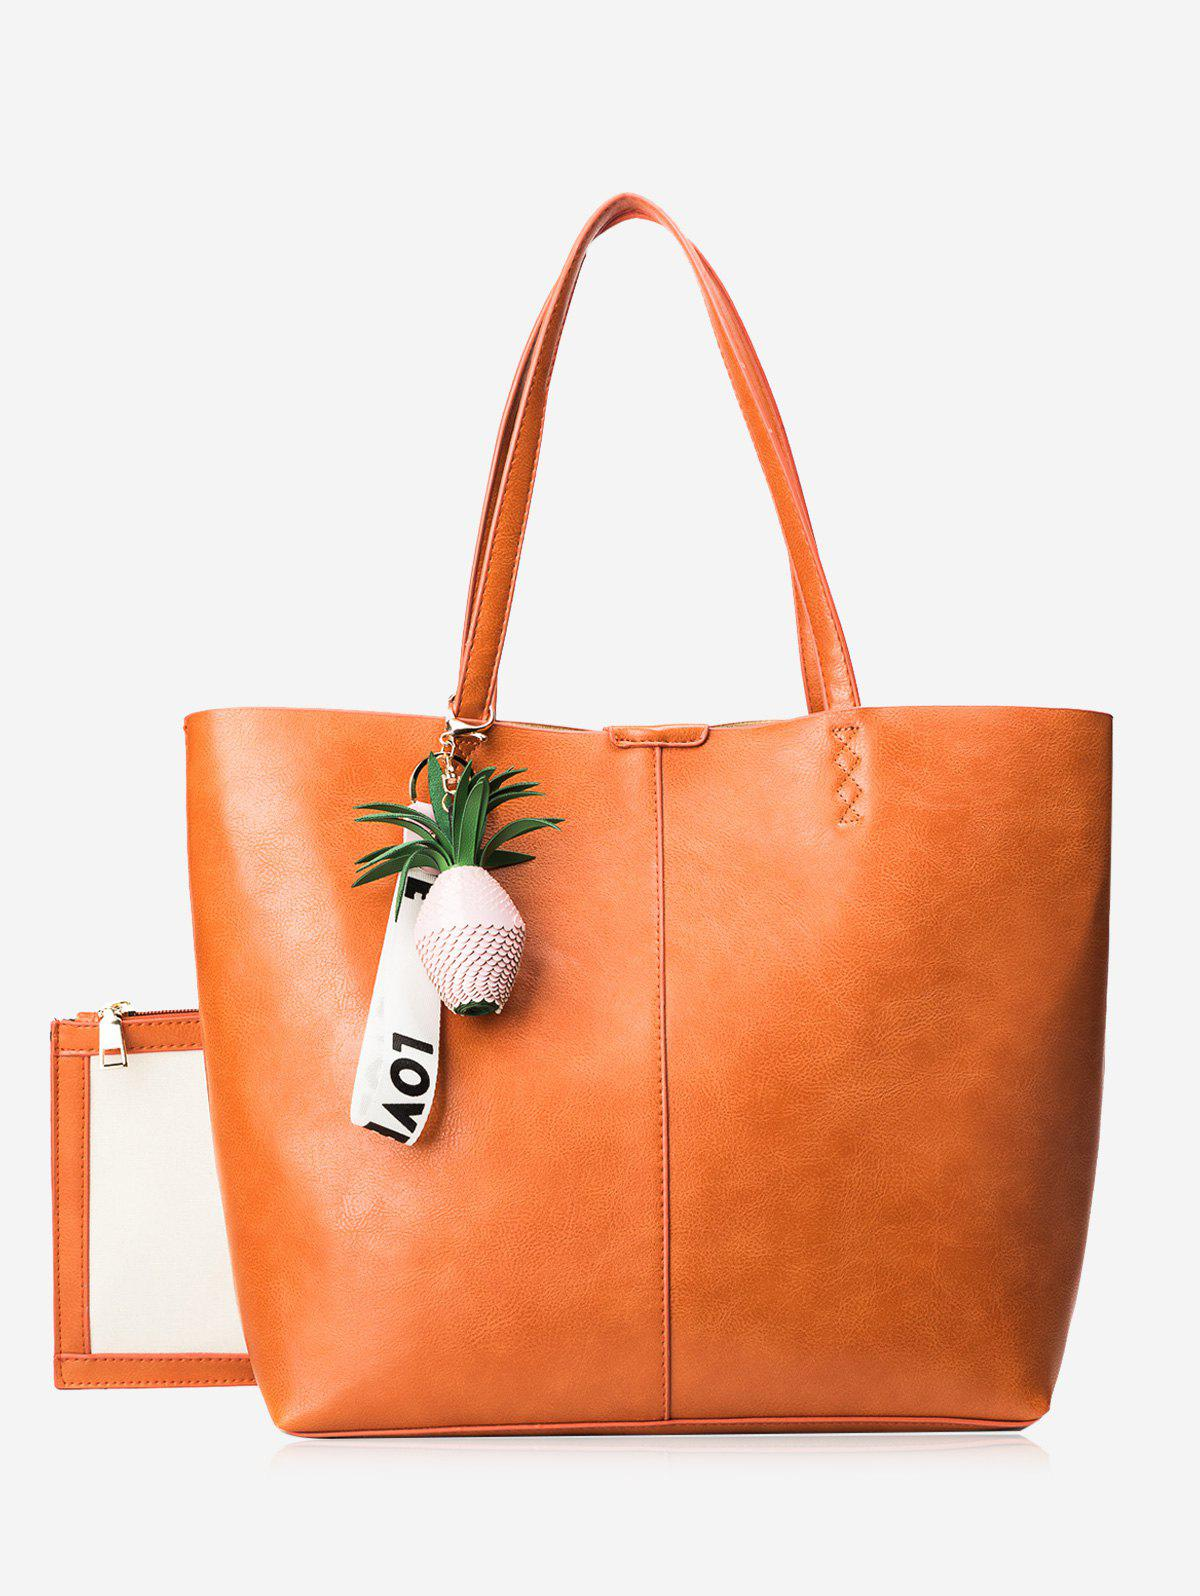 Ensemble de sacs à bandoulière en ananas - Orange